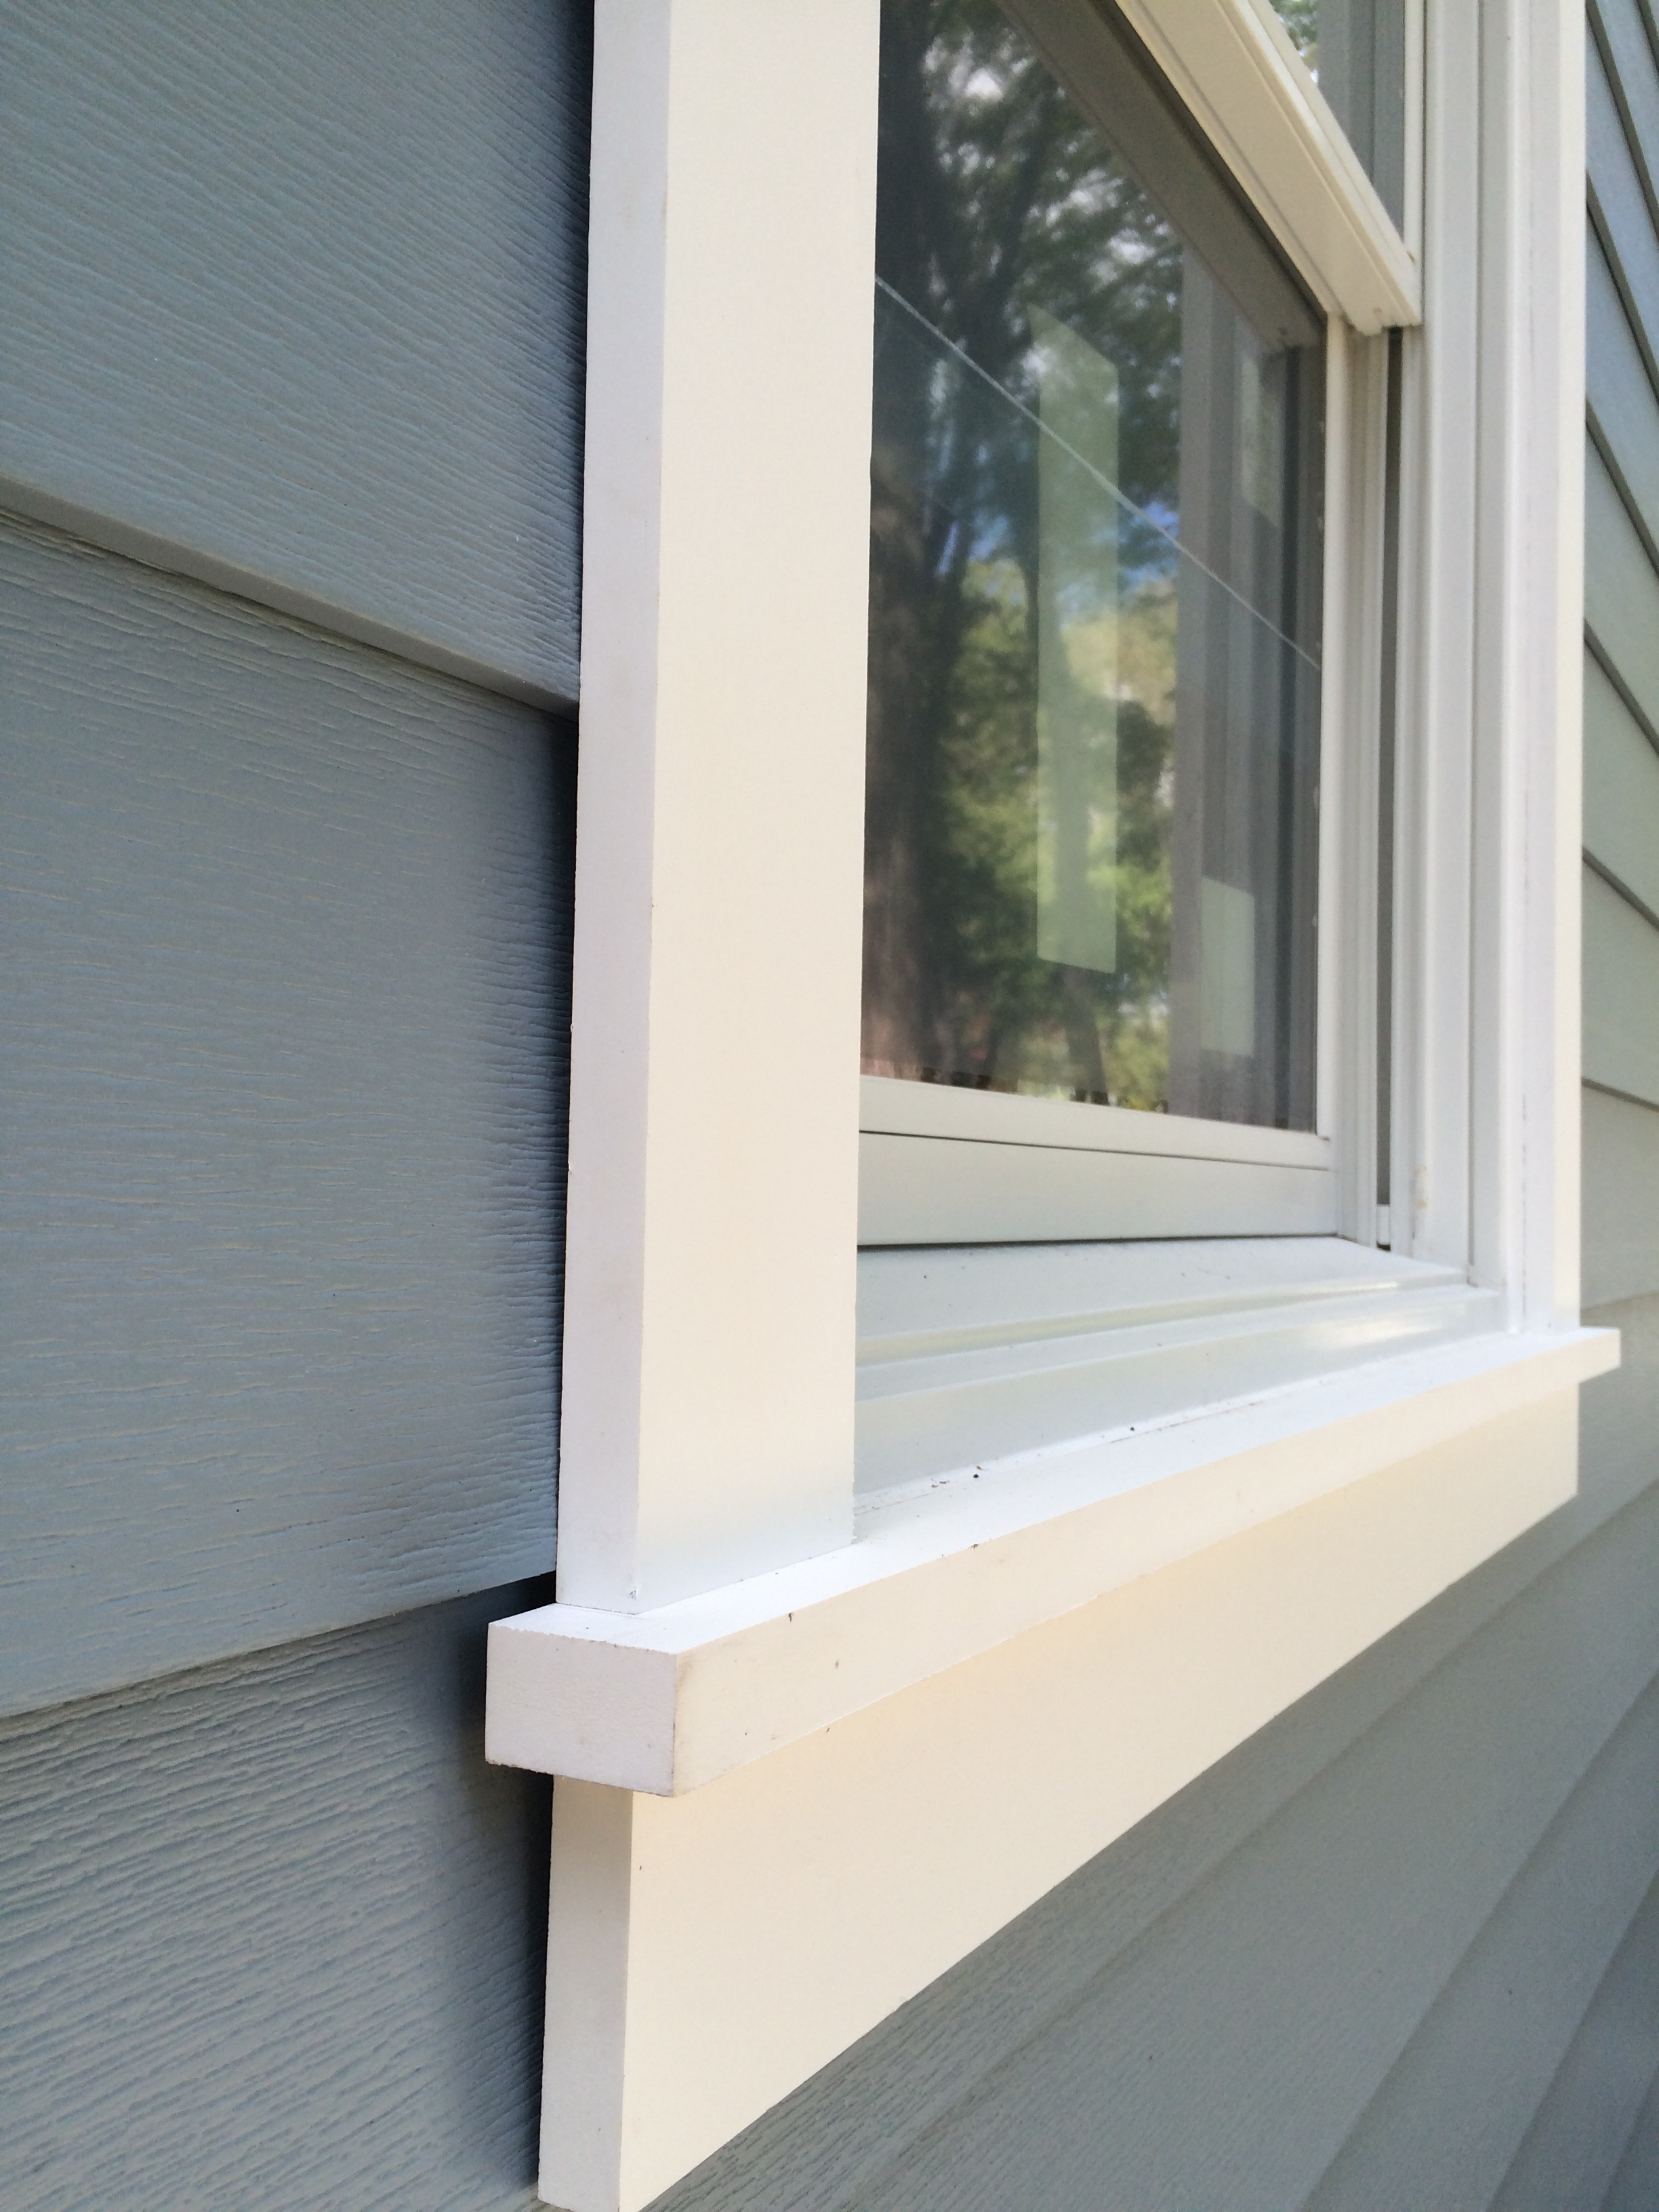 Hanging Outdoor Lights On Vinyl Siding Inside Best And Newest Steps, Lighting, Flowers, Porch 973 795 1627 Vinyl Siding – Install (View 8 of 20)